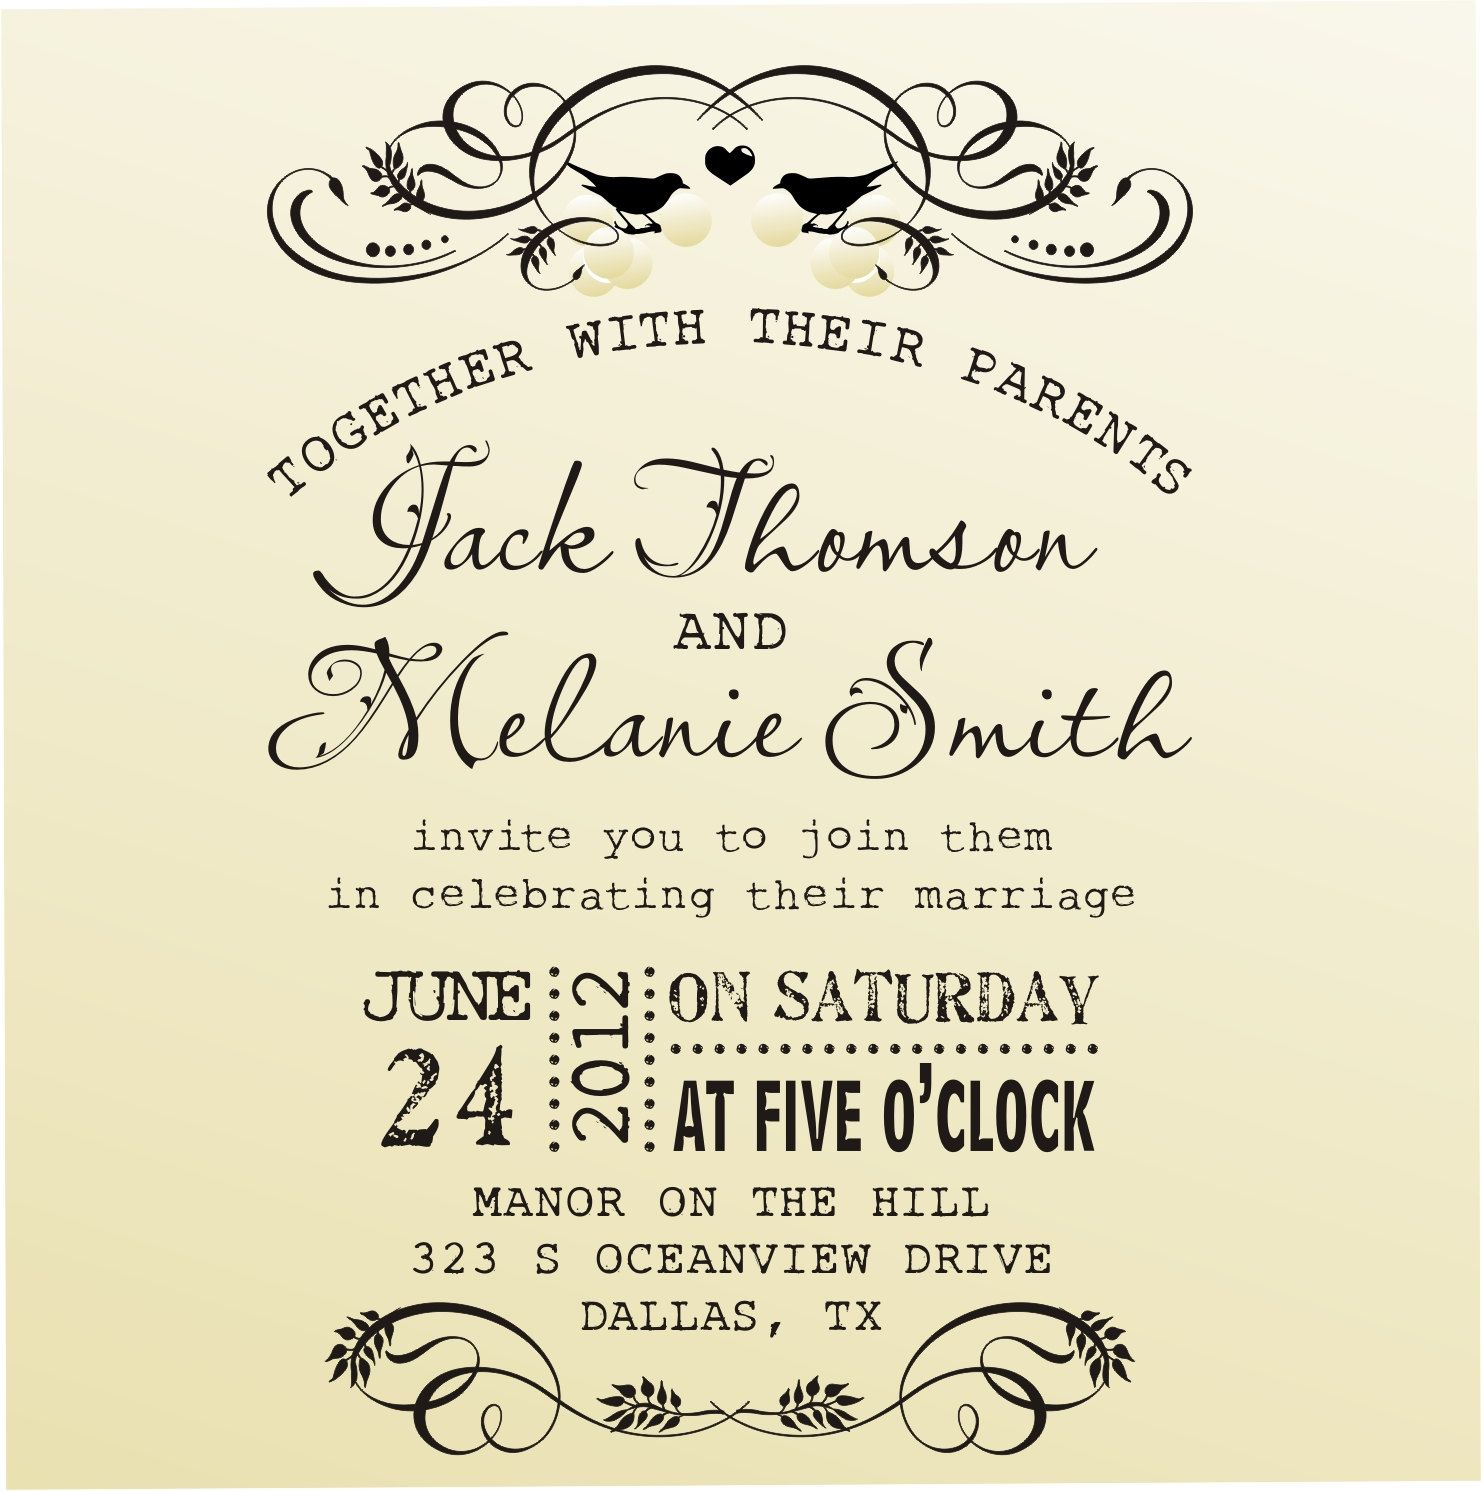 DIY Wedding Invitation Vintage Design Typewriter Font Rubber Stamp Clear  Block Mounted  Style 6020INVITATION